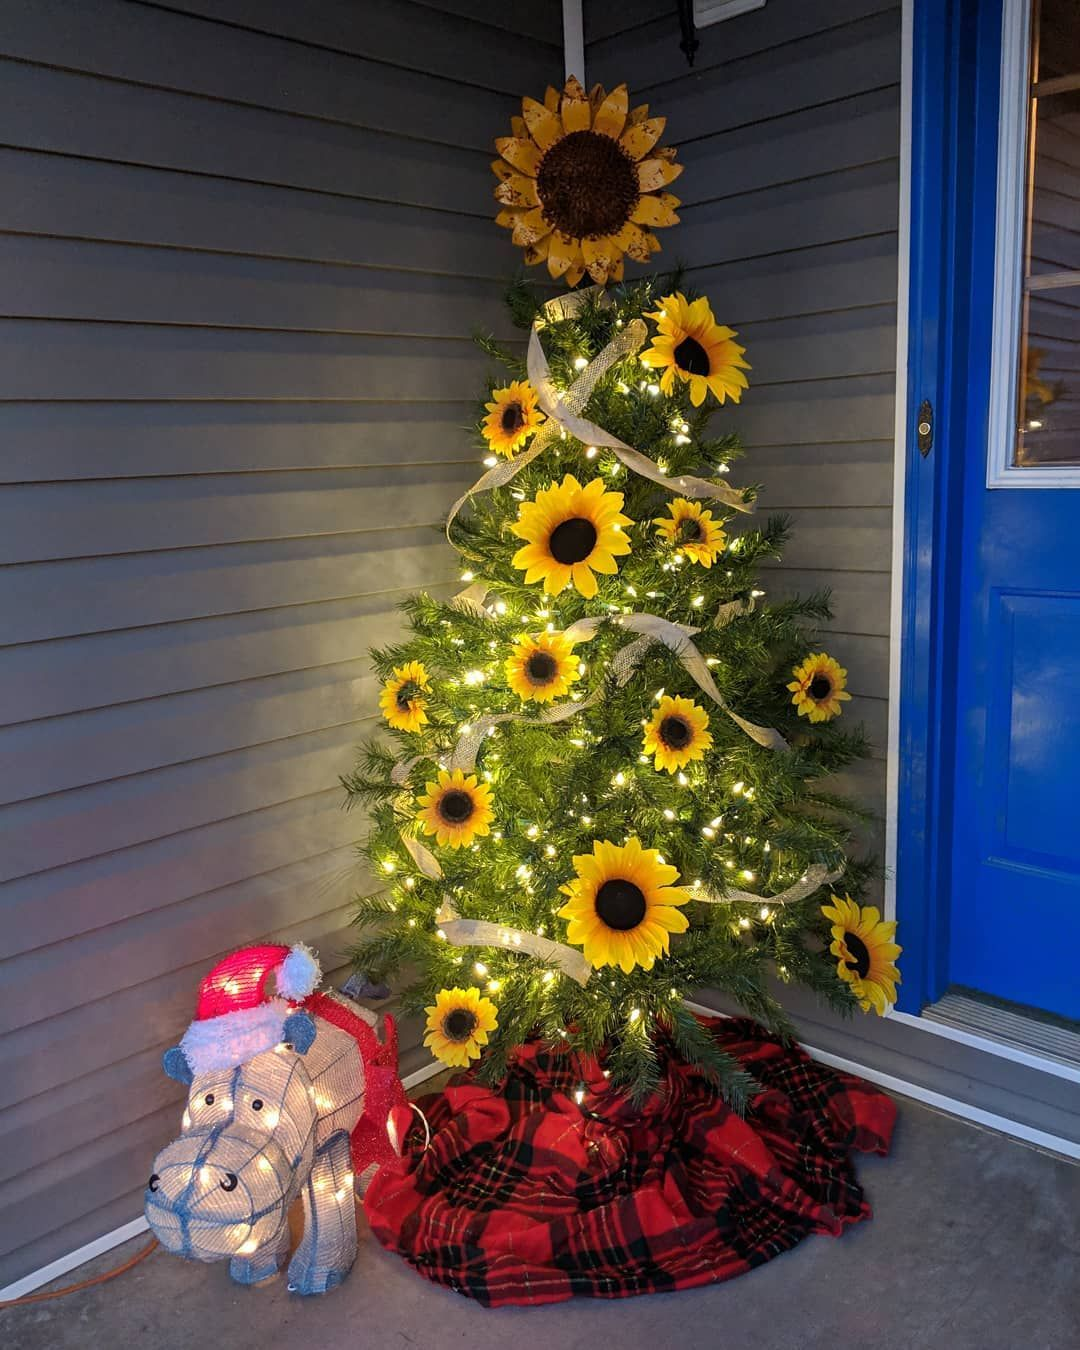 People are adding sunflowers to their Christmas trees, and my bohemian little heart thinks they're pretty groovy. #sunflowerchristmastree People are adding sunflowers to their Christmas trees, and my bohemian little heart thinks they're pretty groovy. #sunflowerchristmastree